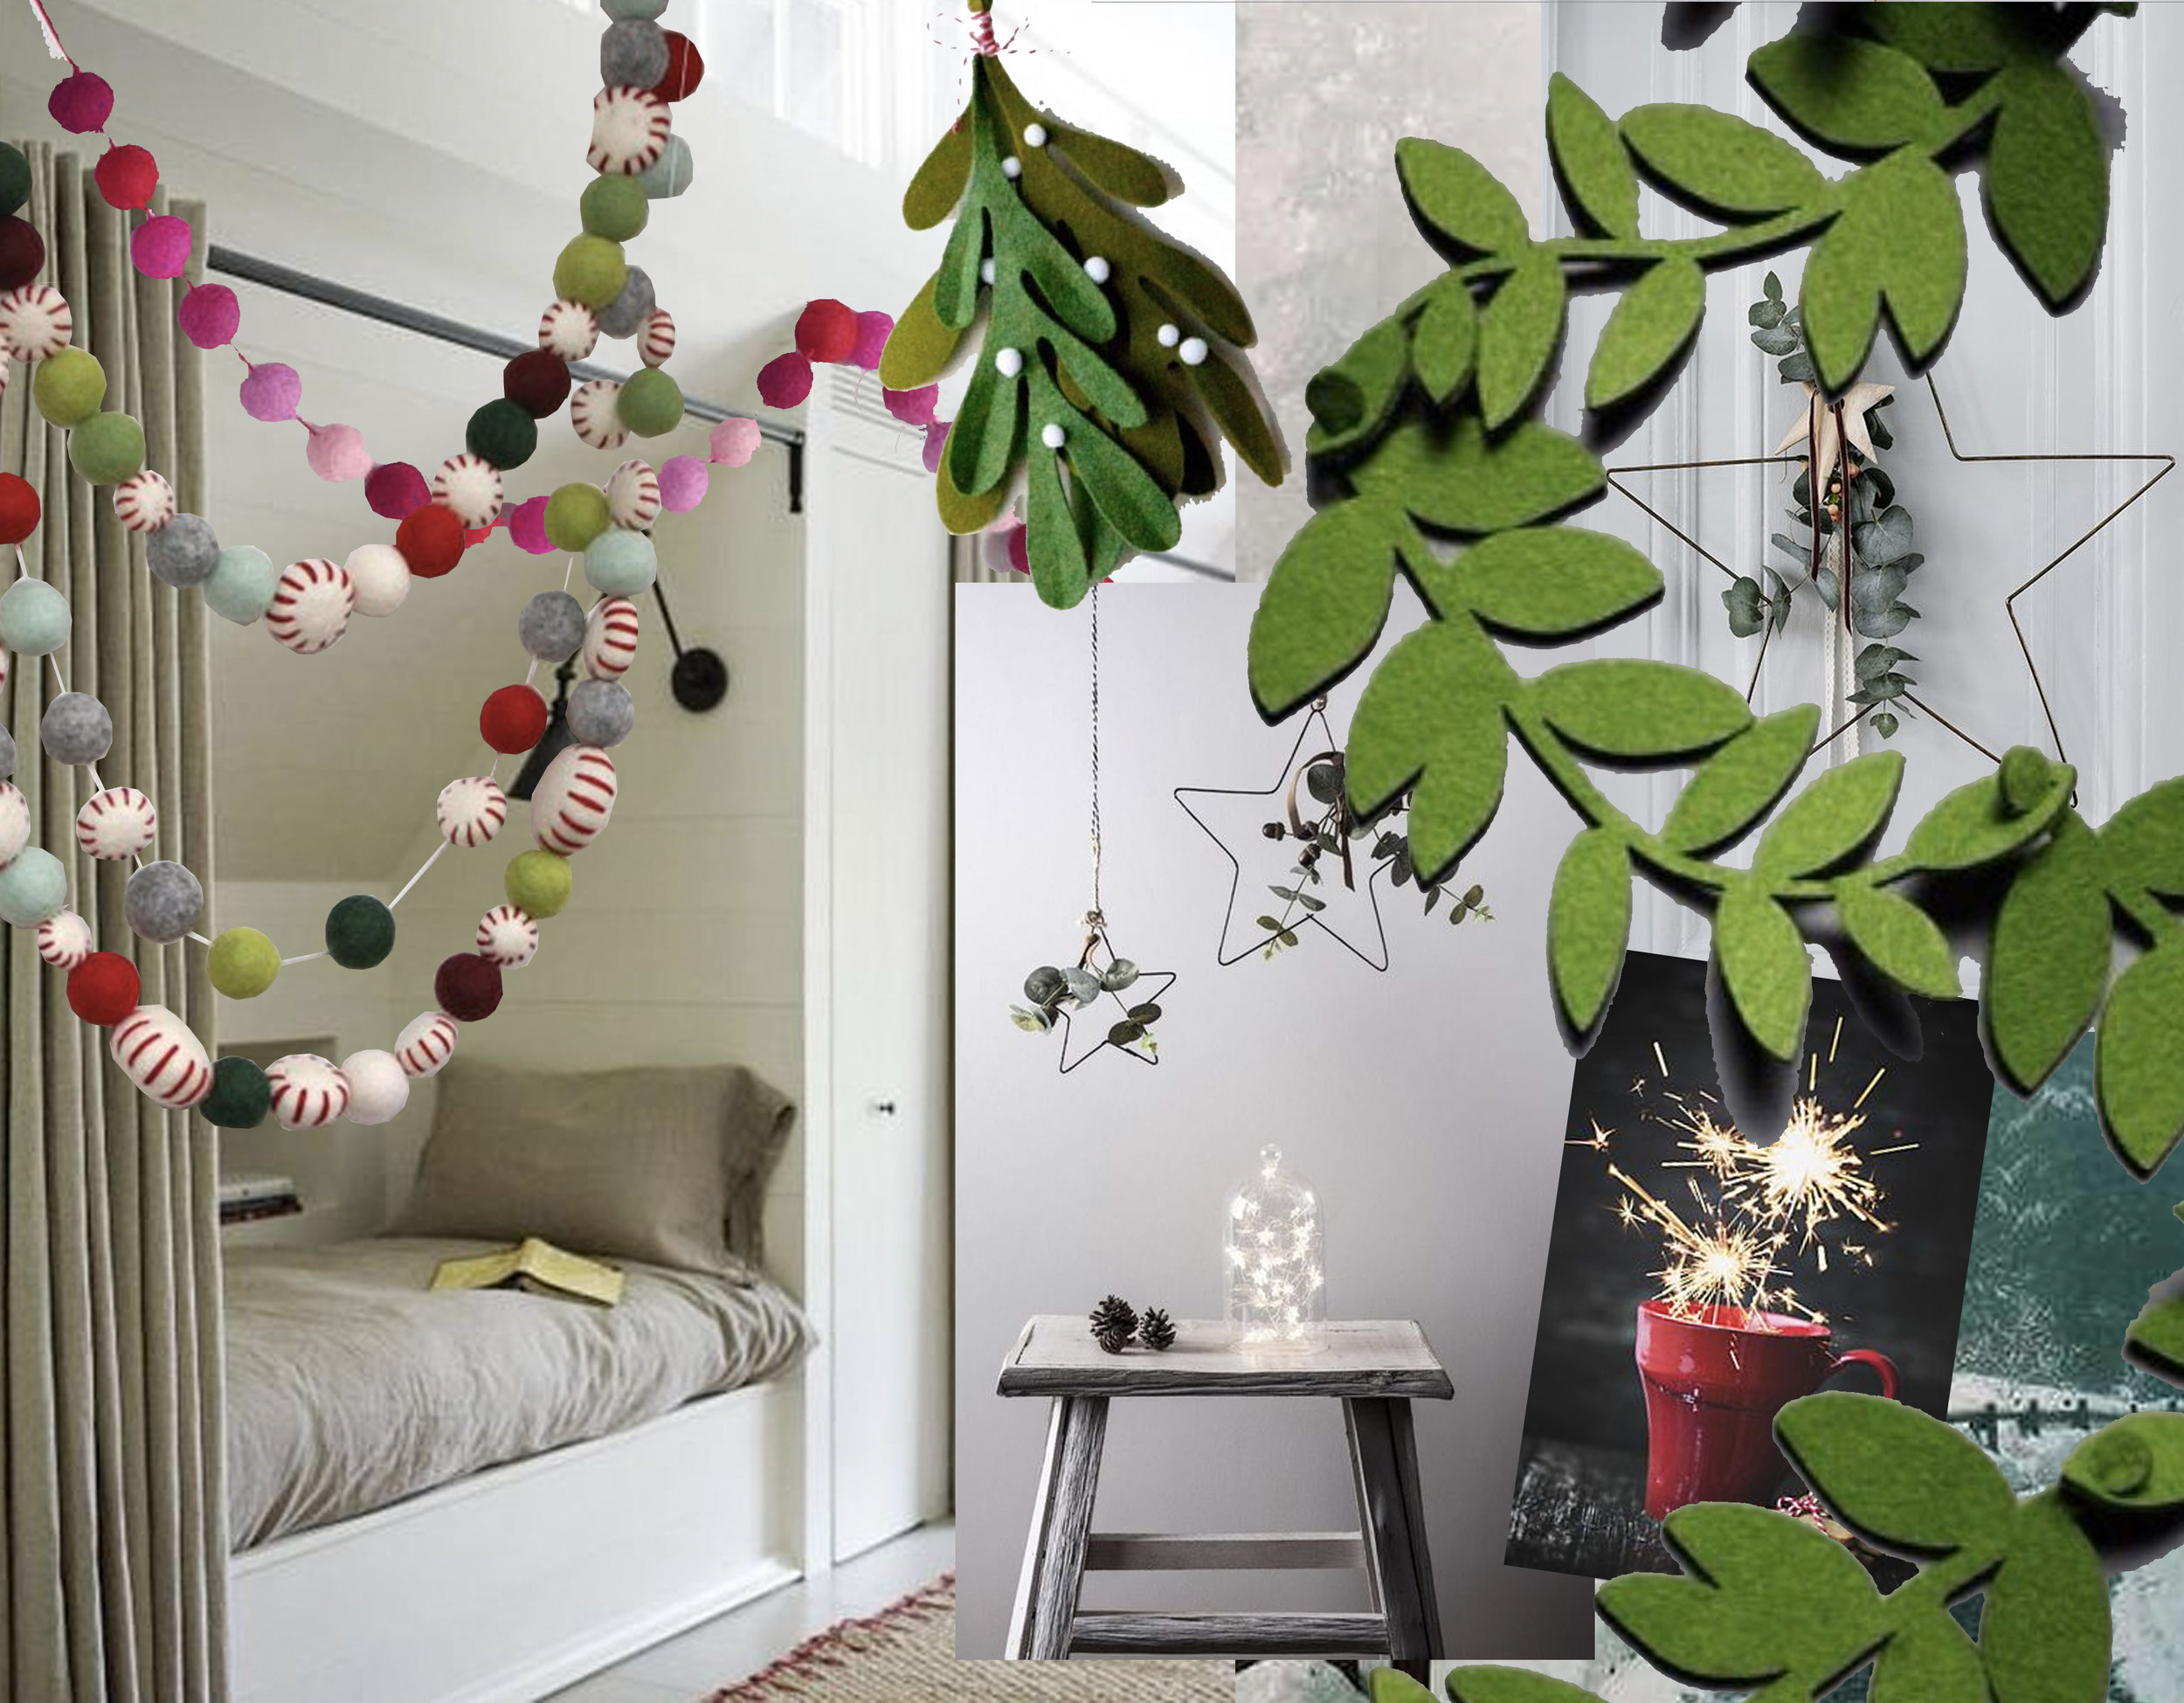 night area in the attic via  Jessica Paster  - colorful garland  Schnuffelinis  - red and pink garland  World Market  - felt mistletoe via  Instagram  - green leaf garland  Bazaartme  - Christmas star via  Indigo Plaza Decor  -